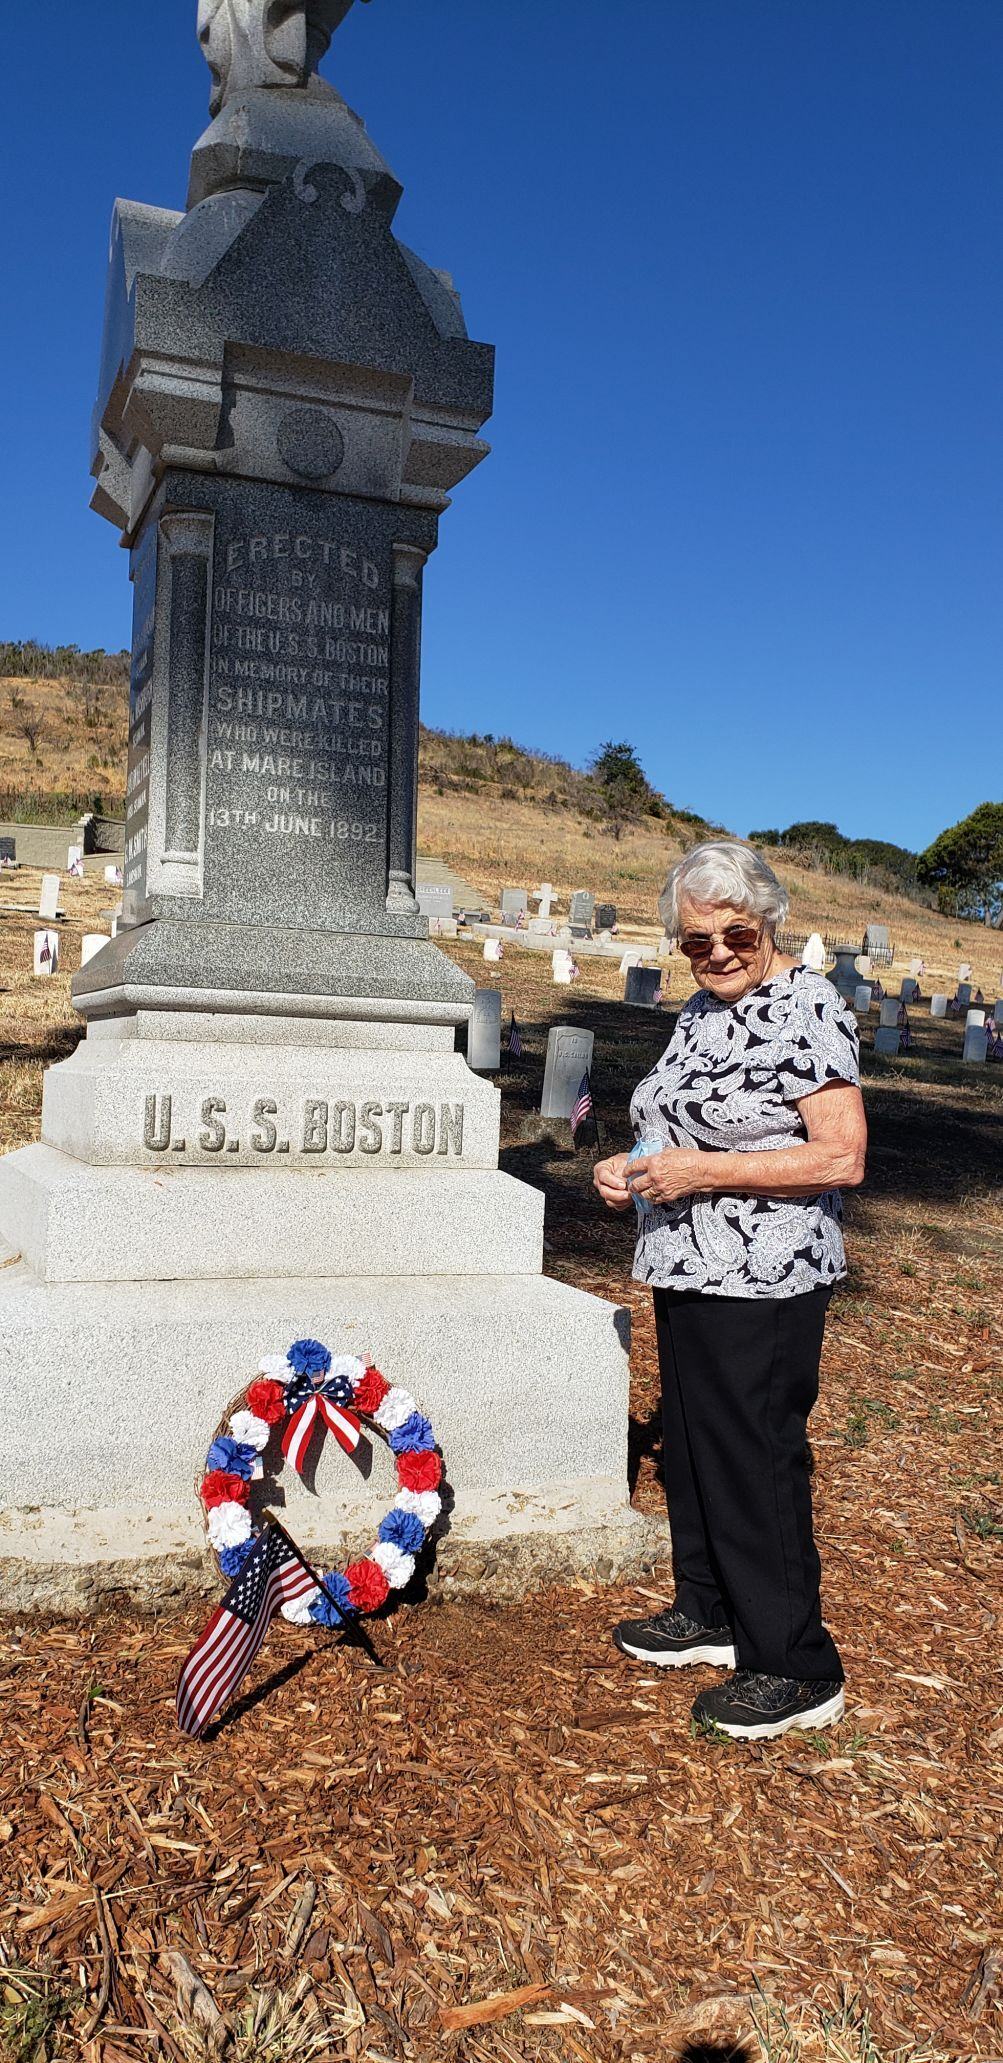 Officials laud improvements to Mare Island Naval Cemetery during Memorial Day event